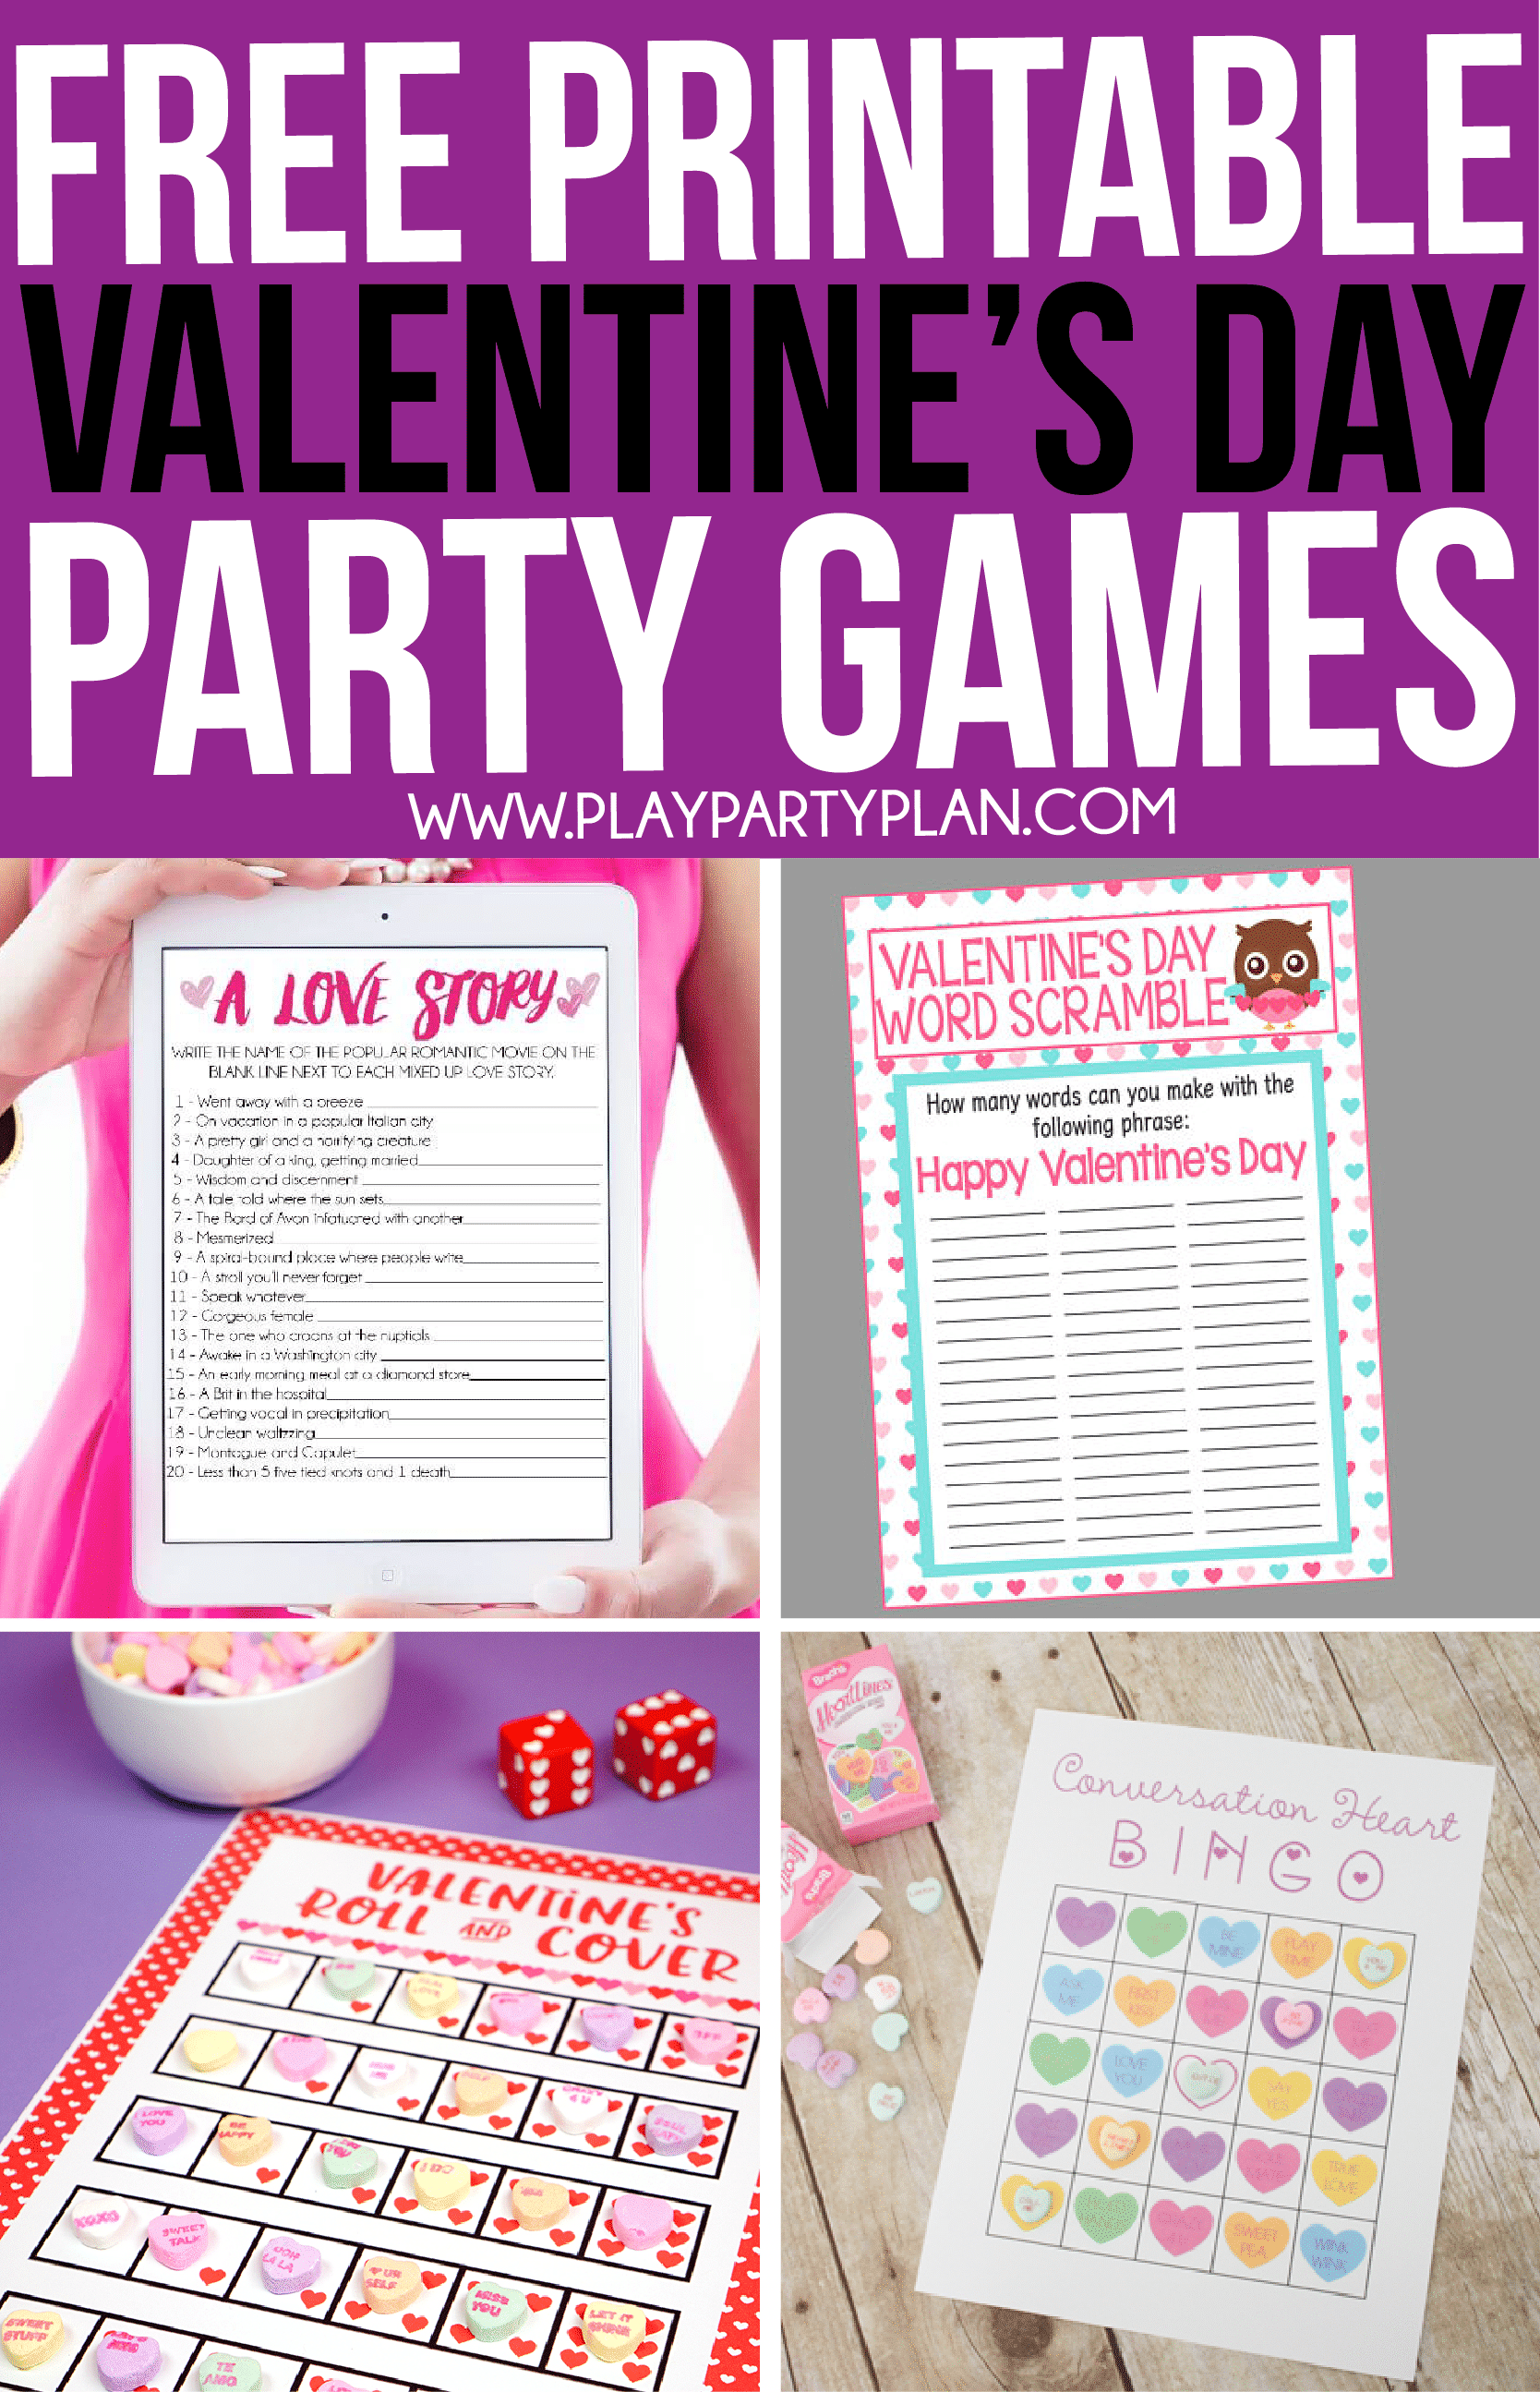 30 Valentine's Day Games Everyone Will Absolutely Love